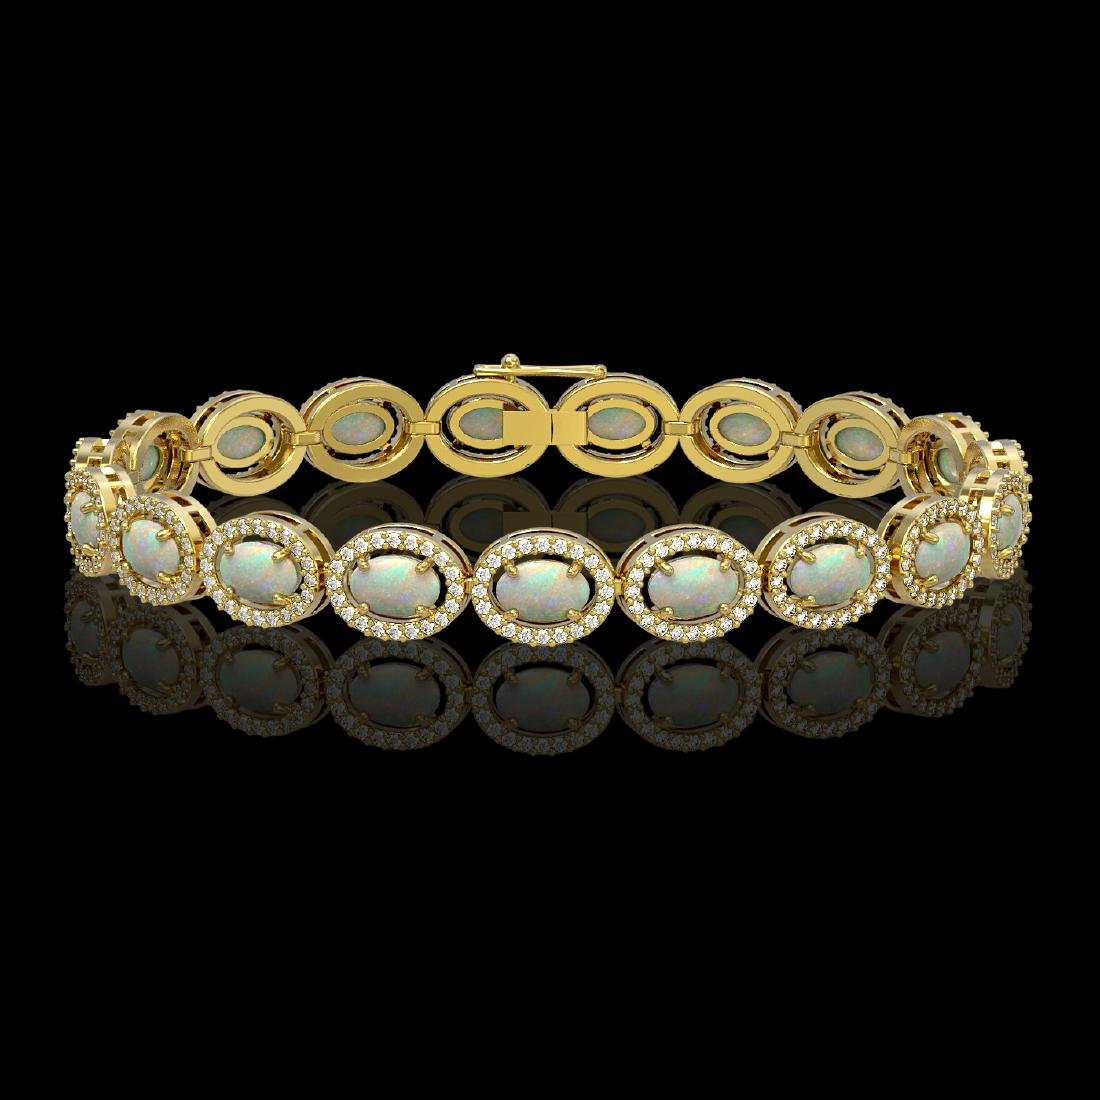 9.5 CTW Opal & Diamond Halo Bracelet 10K Yellow Gold